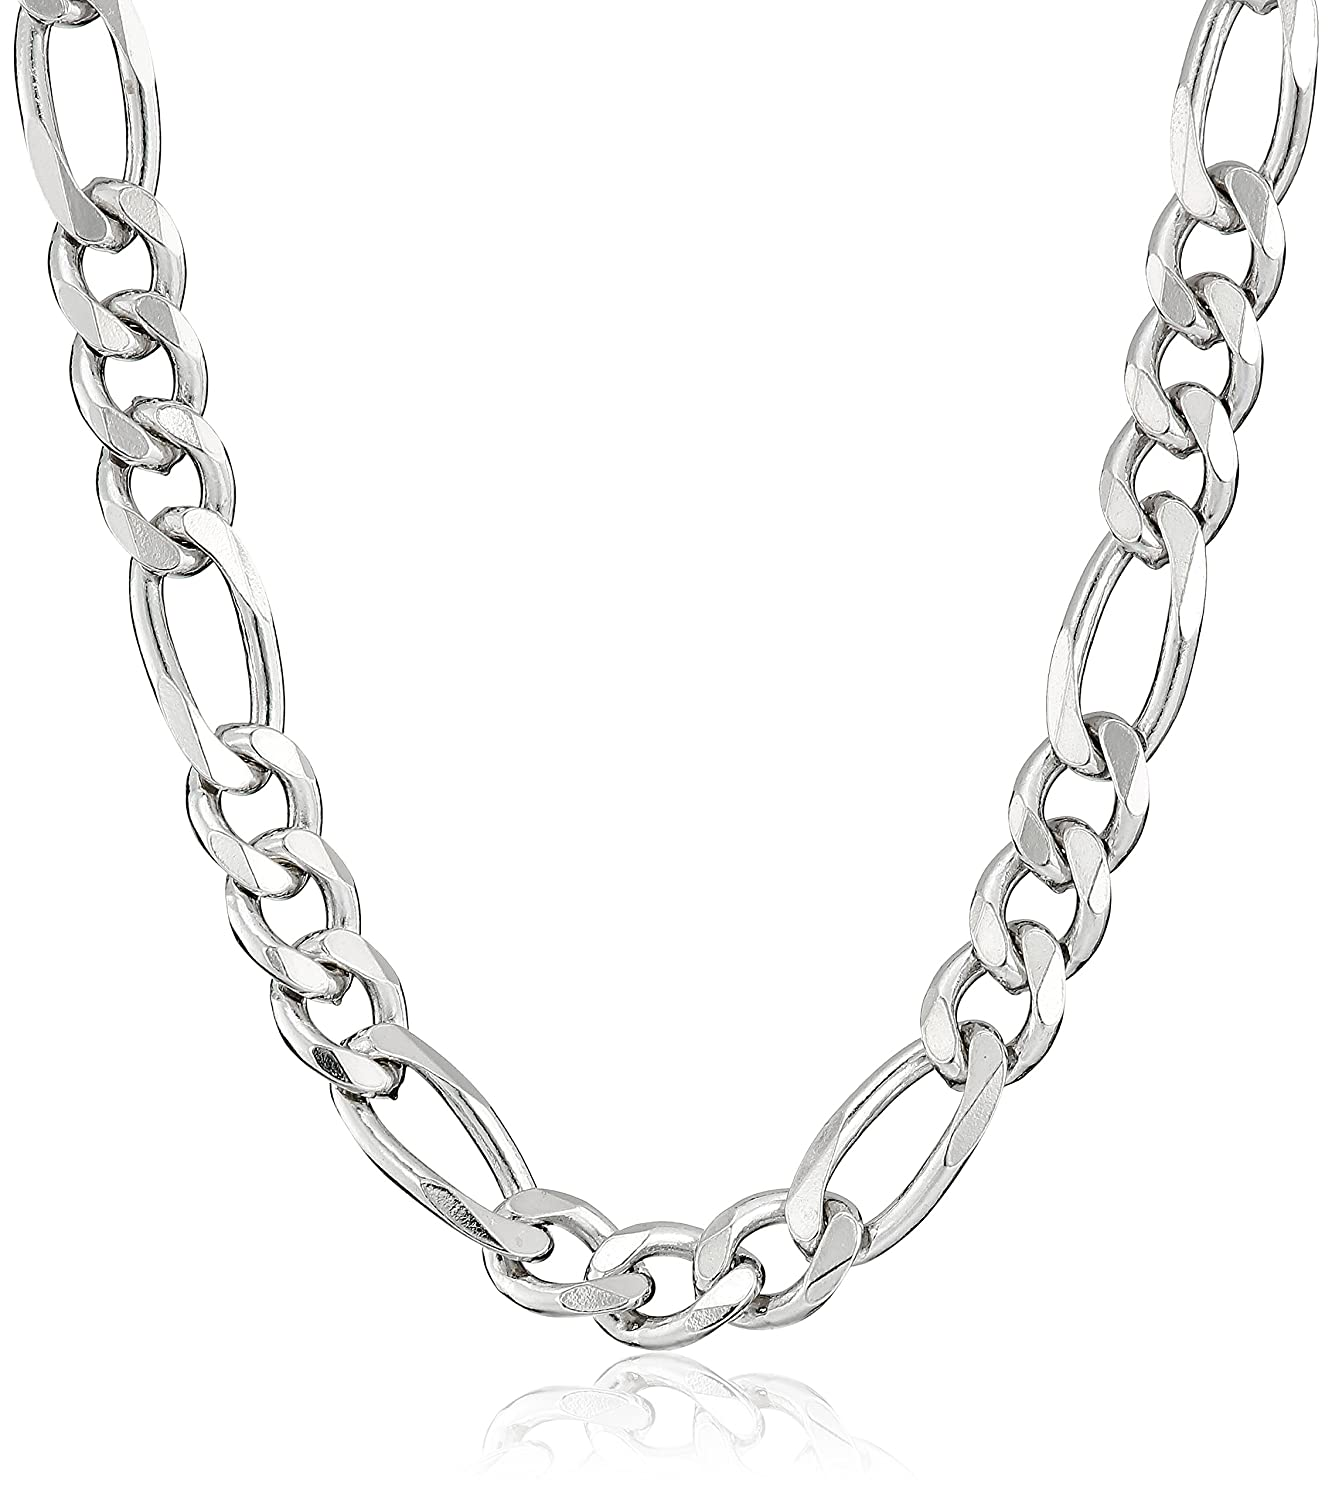 rhodium plated over to necklaces necklace ready chains bracelet cha sterling anklet chain wear rolo silver finished